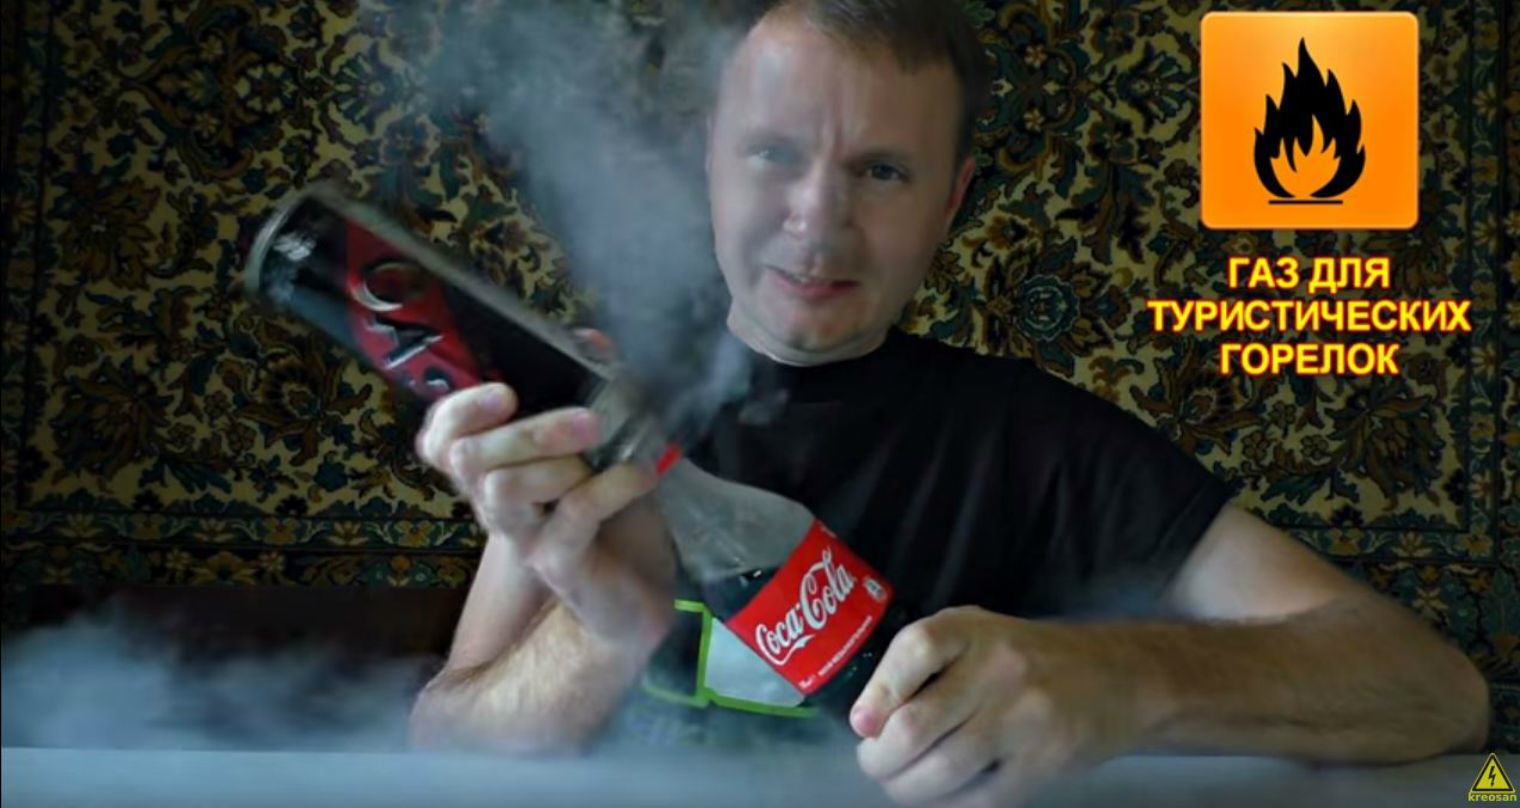 One Man Decided To Pump A Bottle Of Coke With Propane, Guess What Happens Next? UNILAD coke23